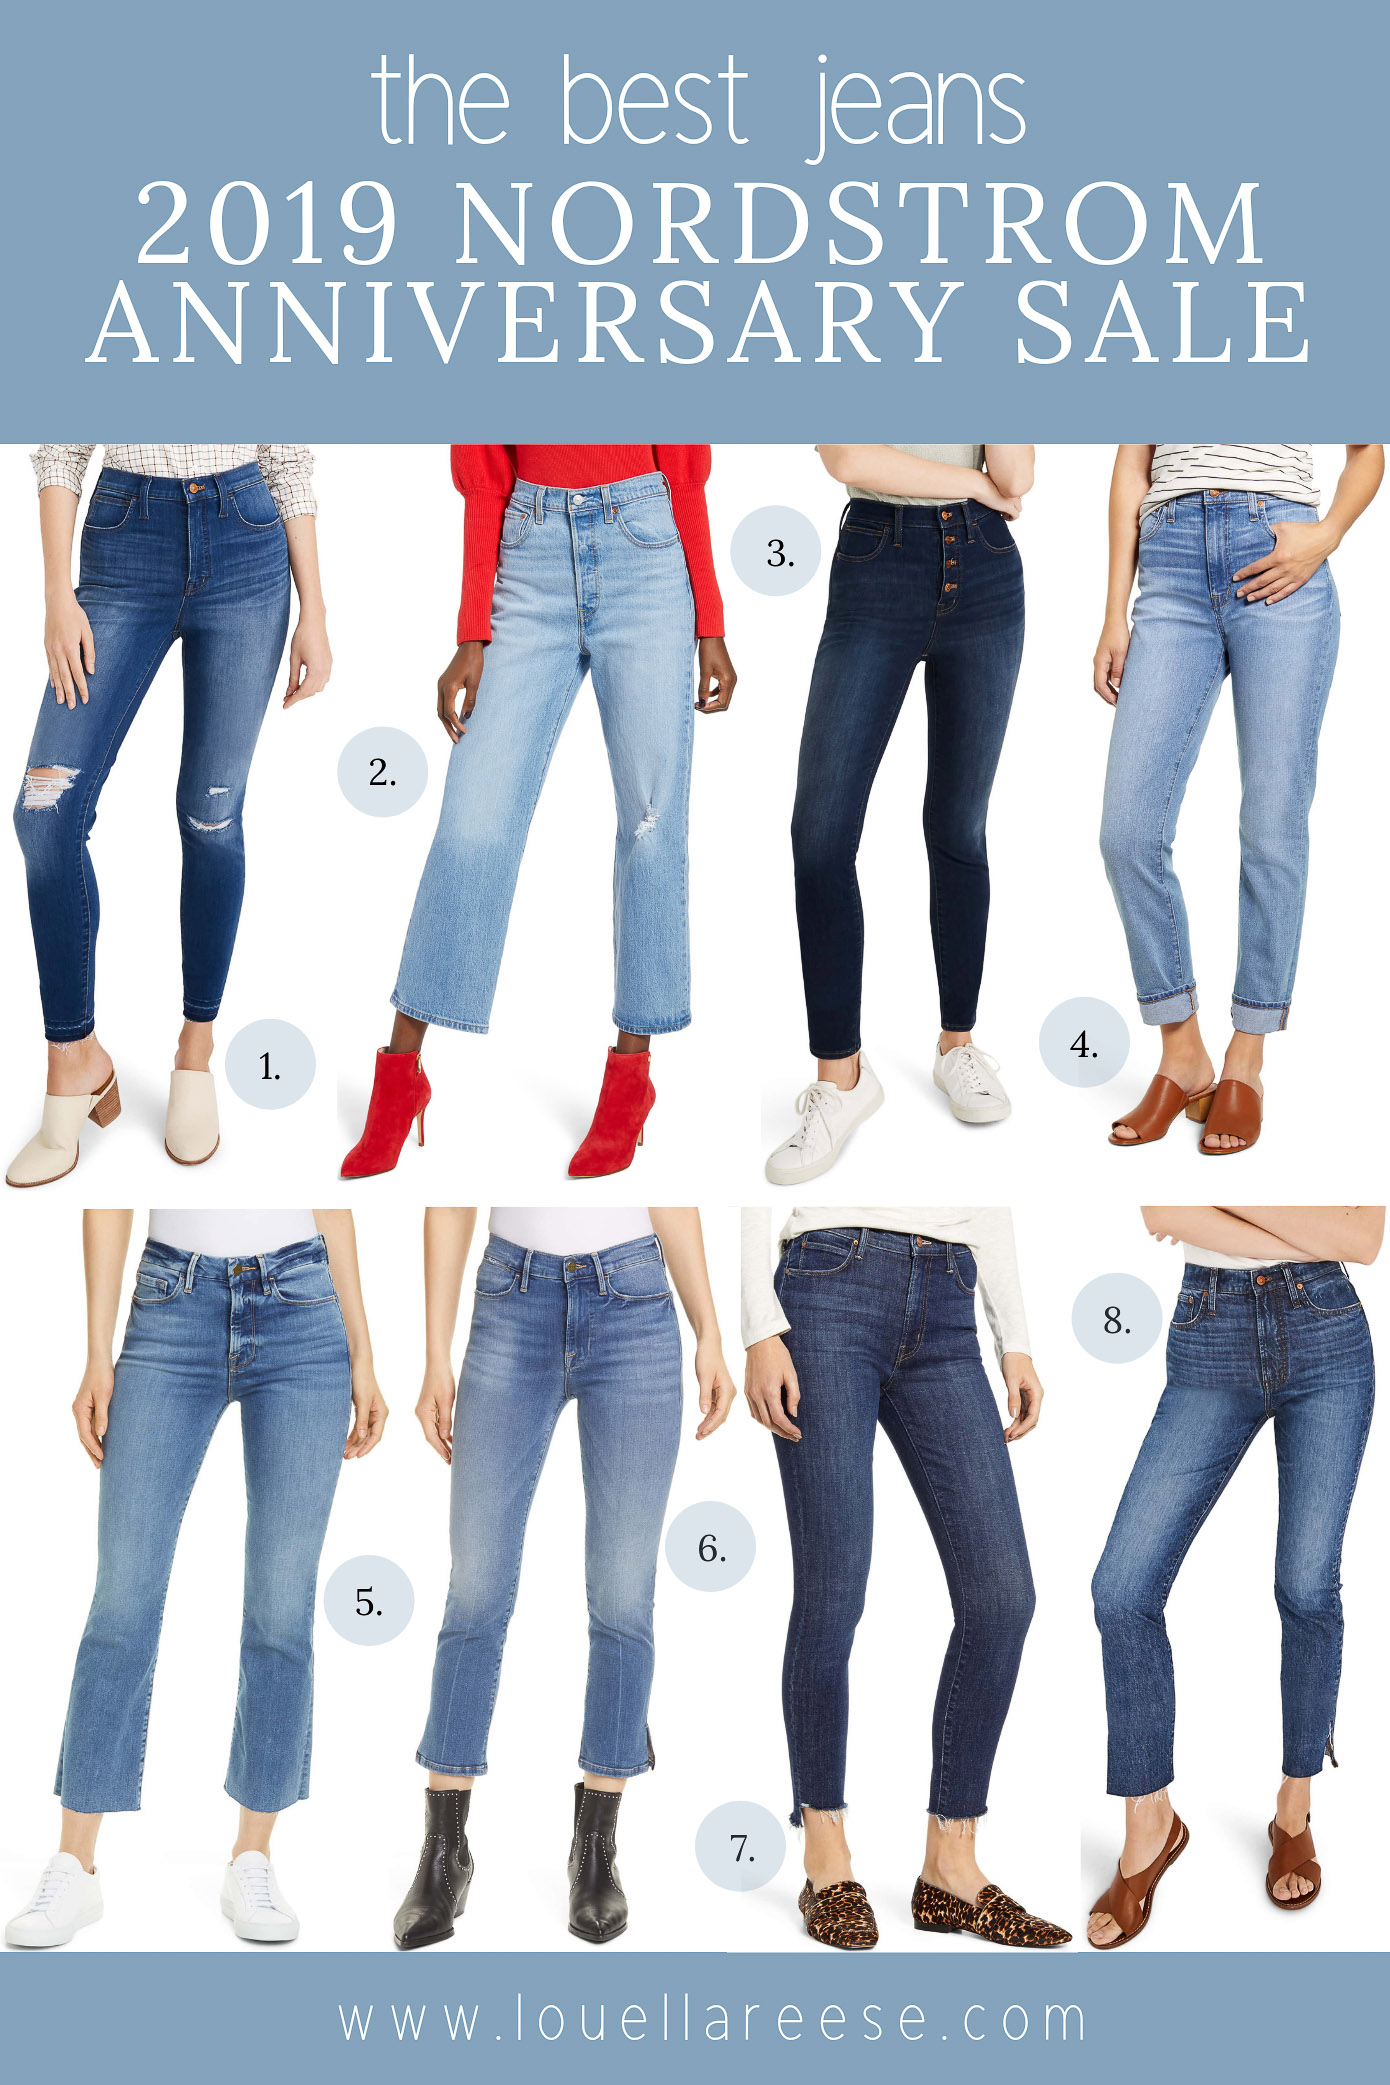 2019 Nordstrom Anniversary Sale Best Jeans | The BEST denim from the 2019 Nordstrom Anniversary Sale | Louella Reese